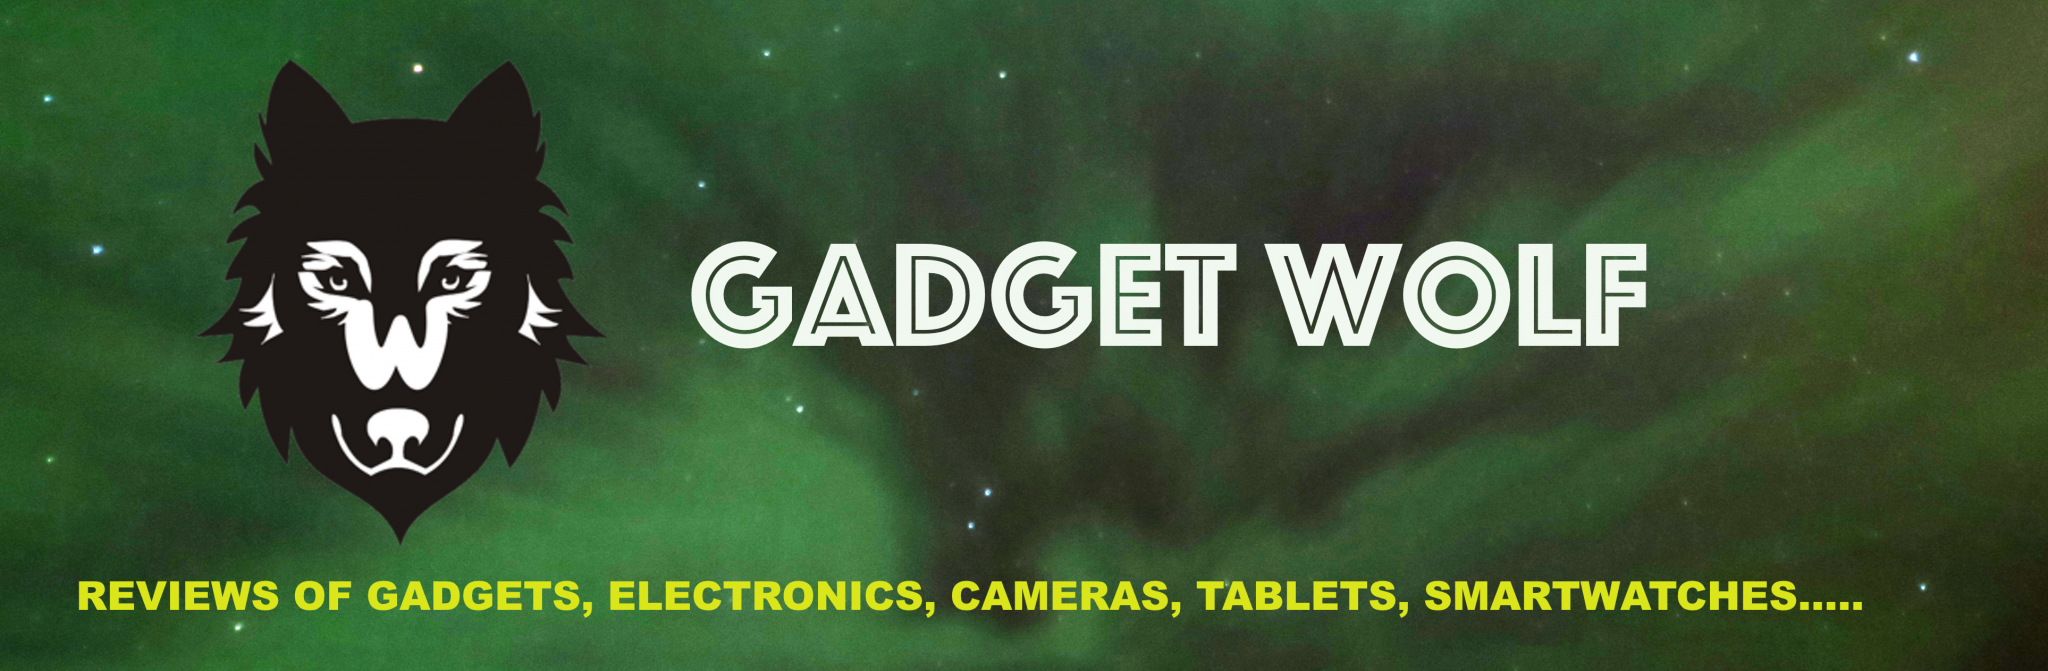 GADGETWOLF